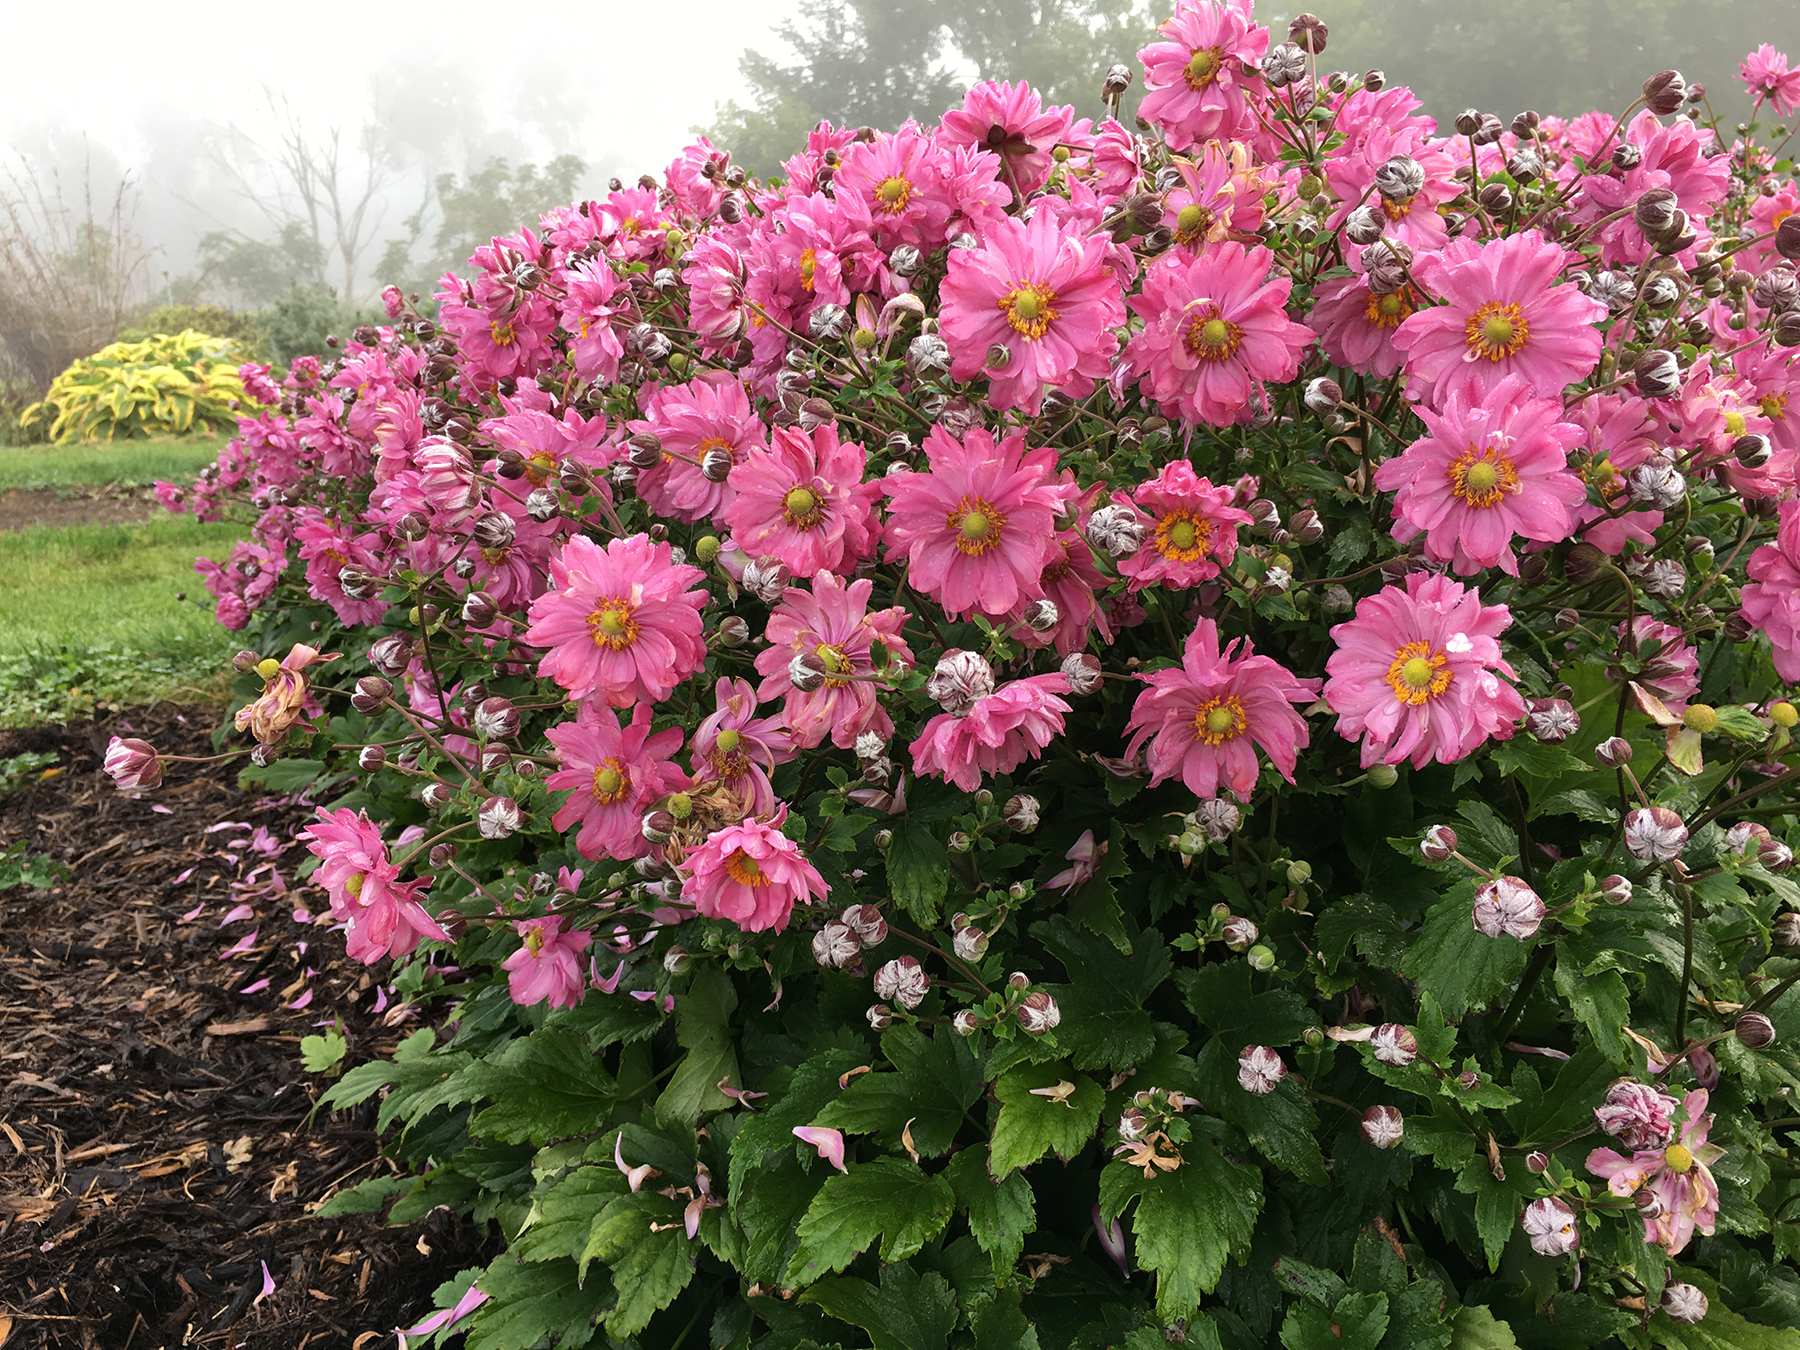 Japanese anemone 'Fall in Love Sweetly' has a compact habit